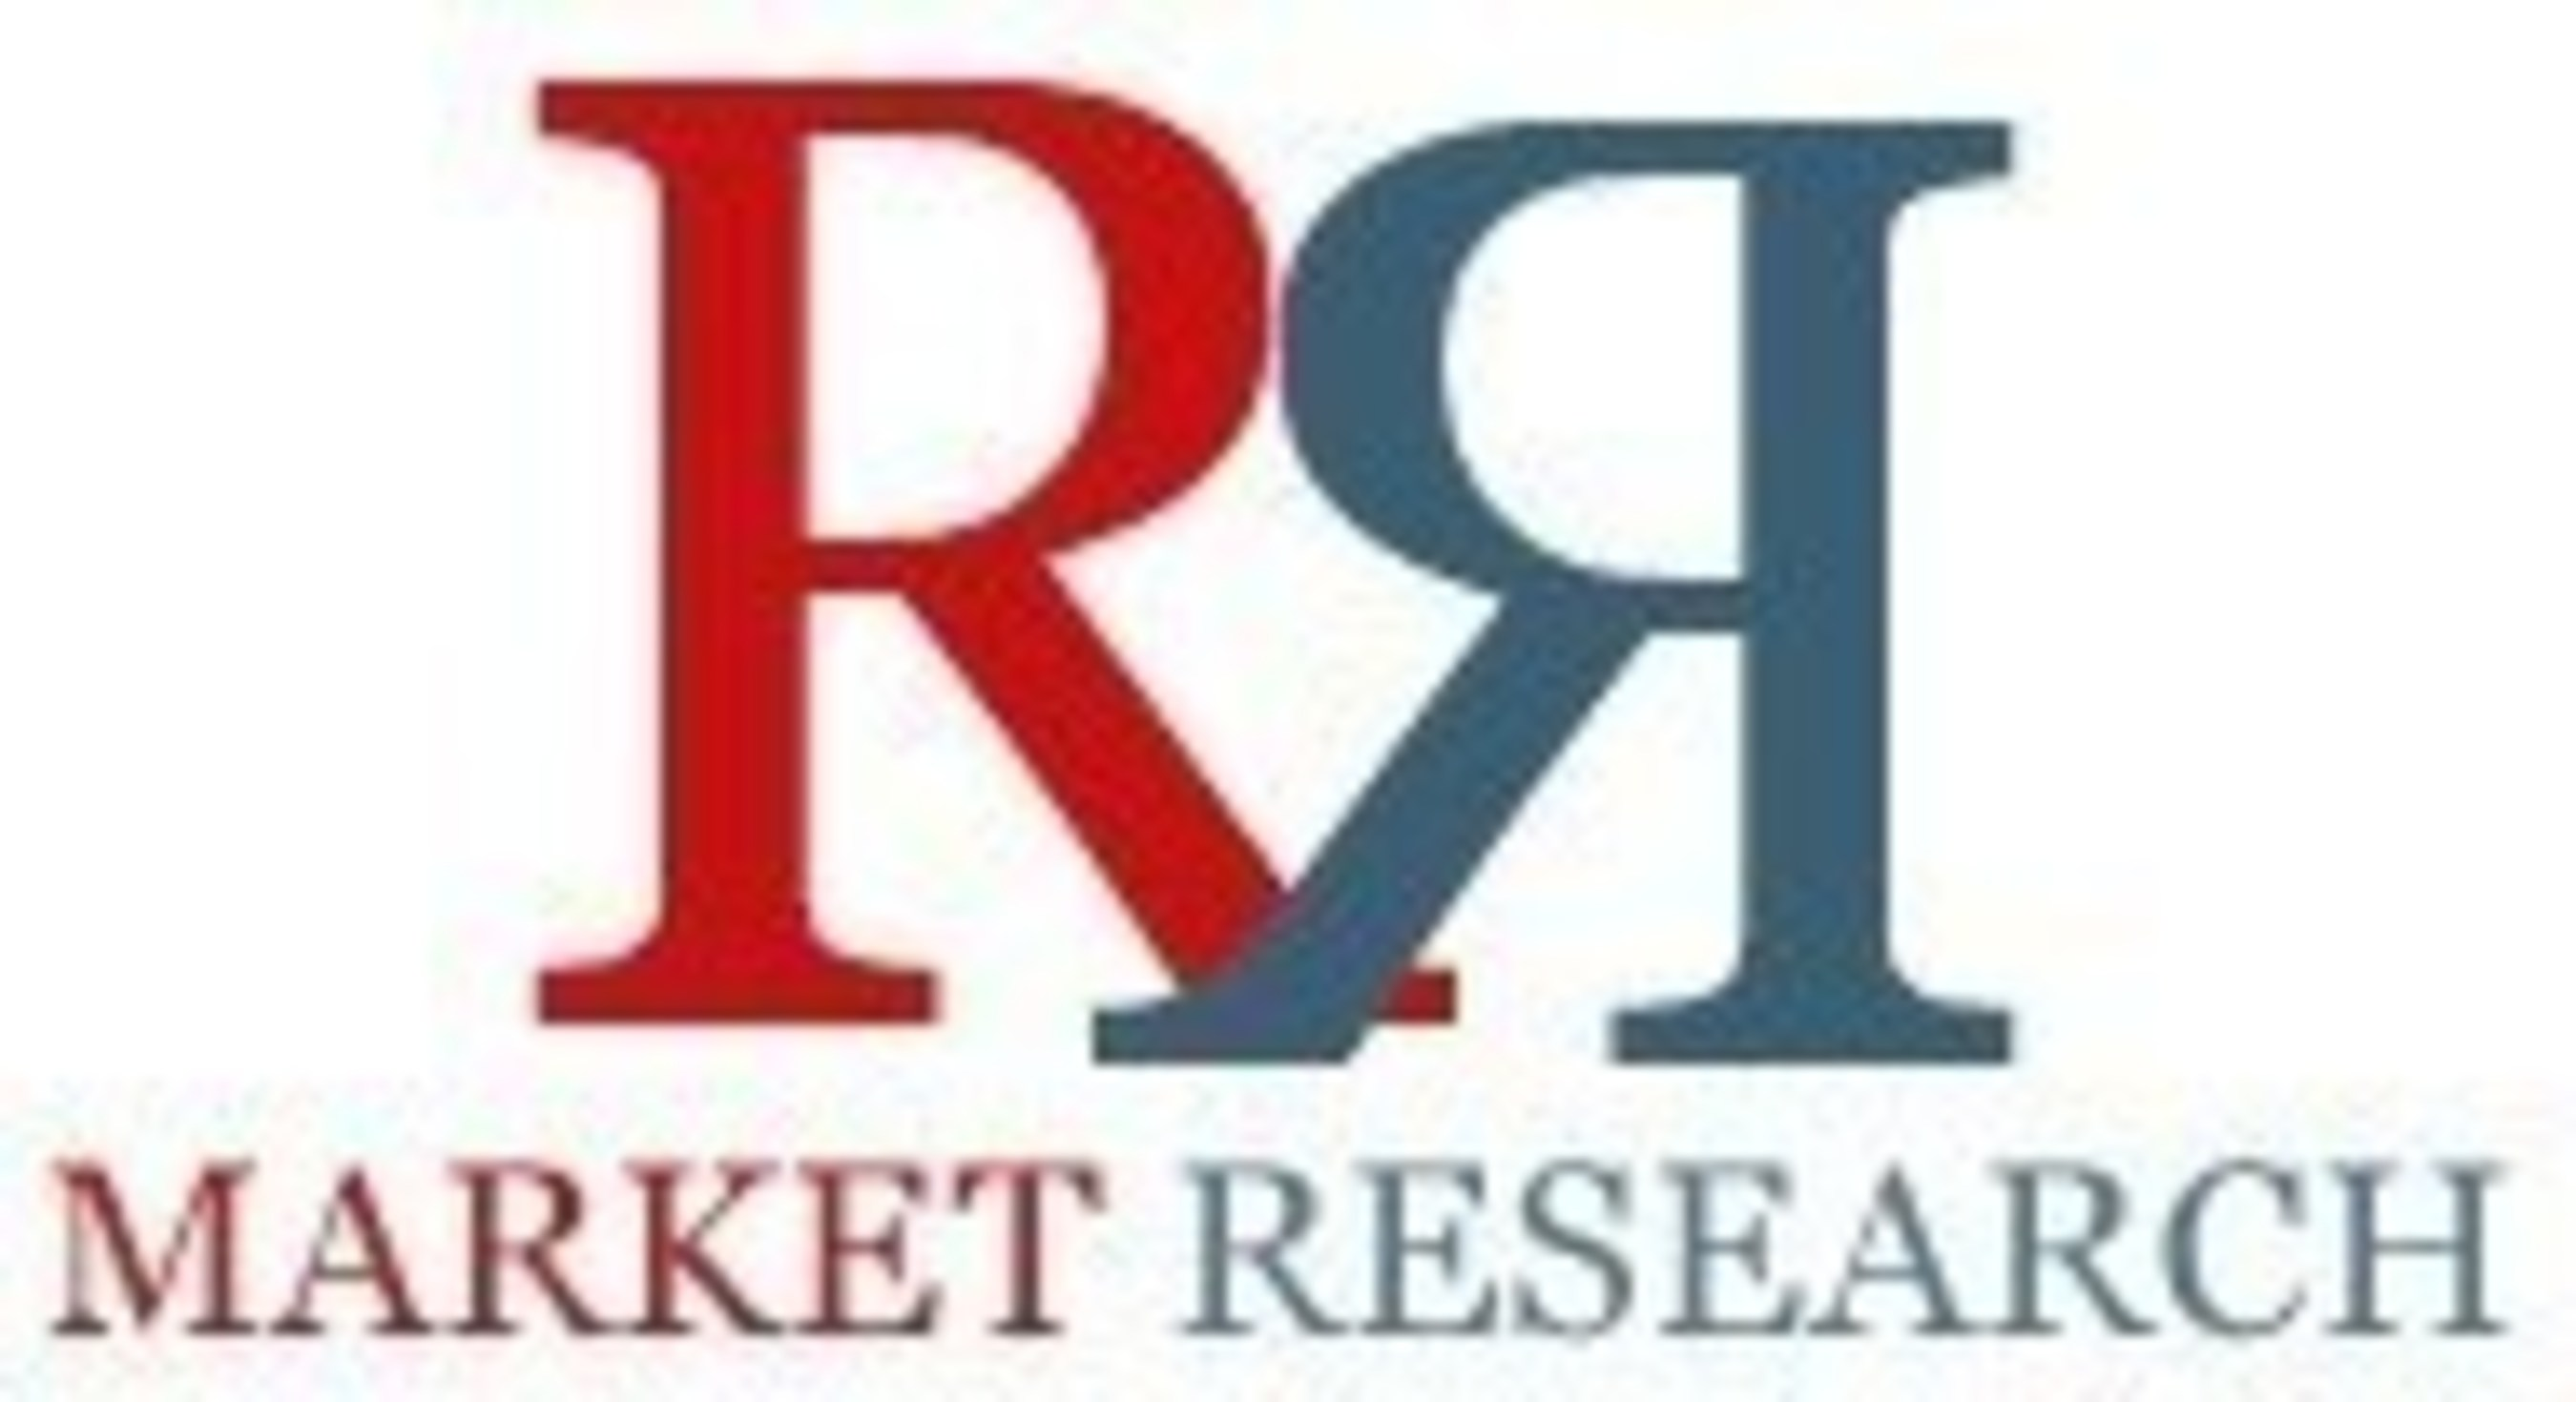 Enterprise Mobile Application Development Services Market to Grow at 13% CAGR by 2019